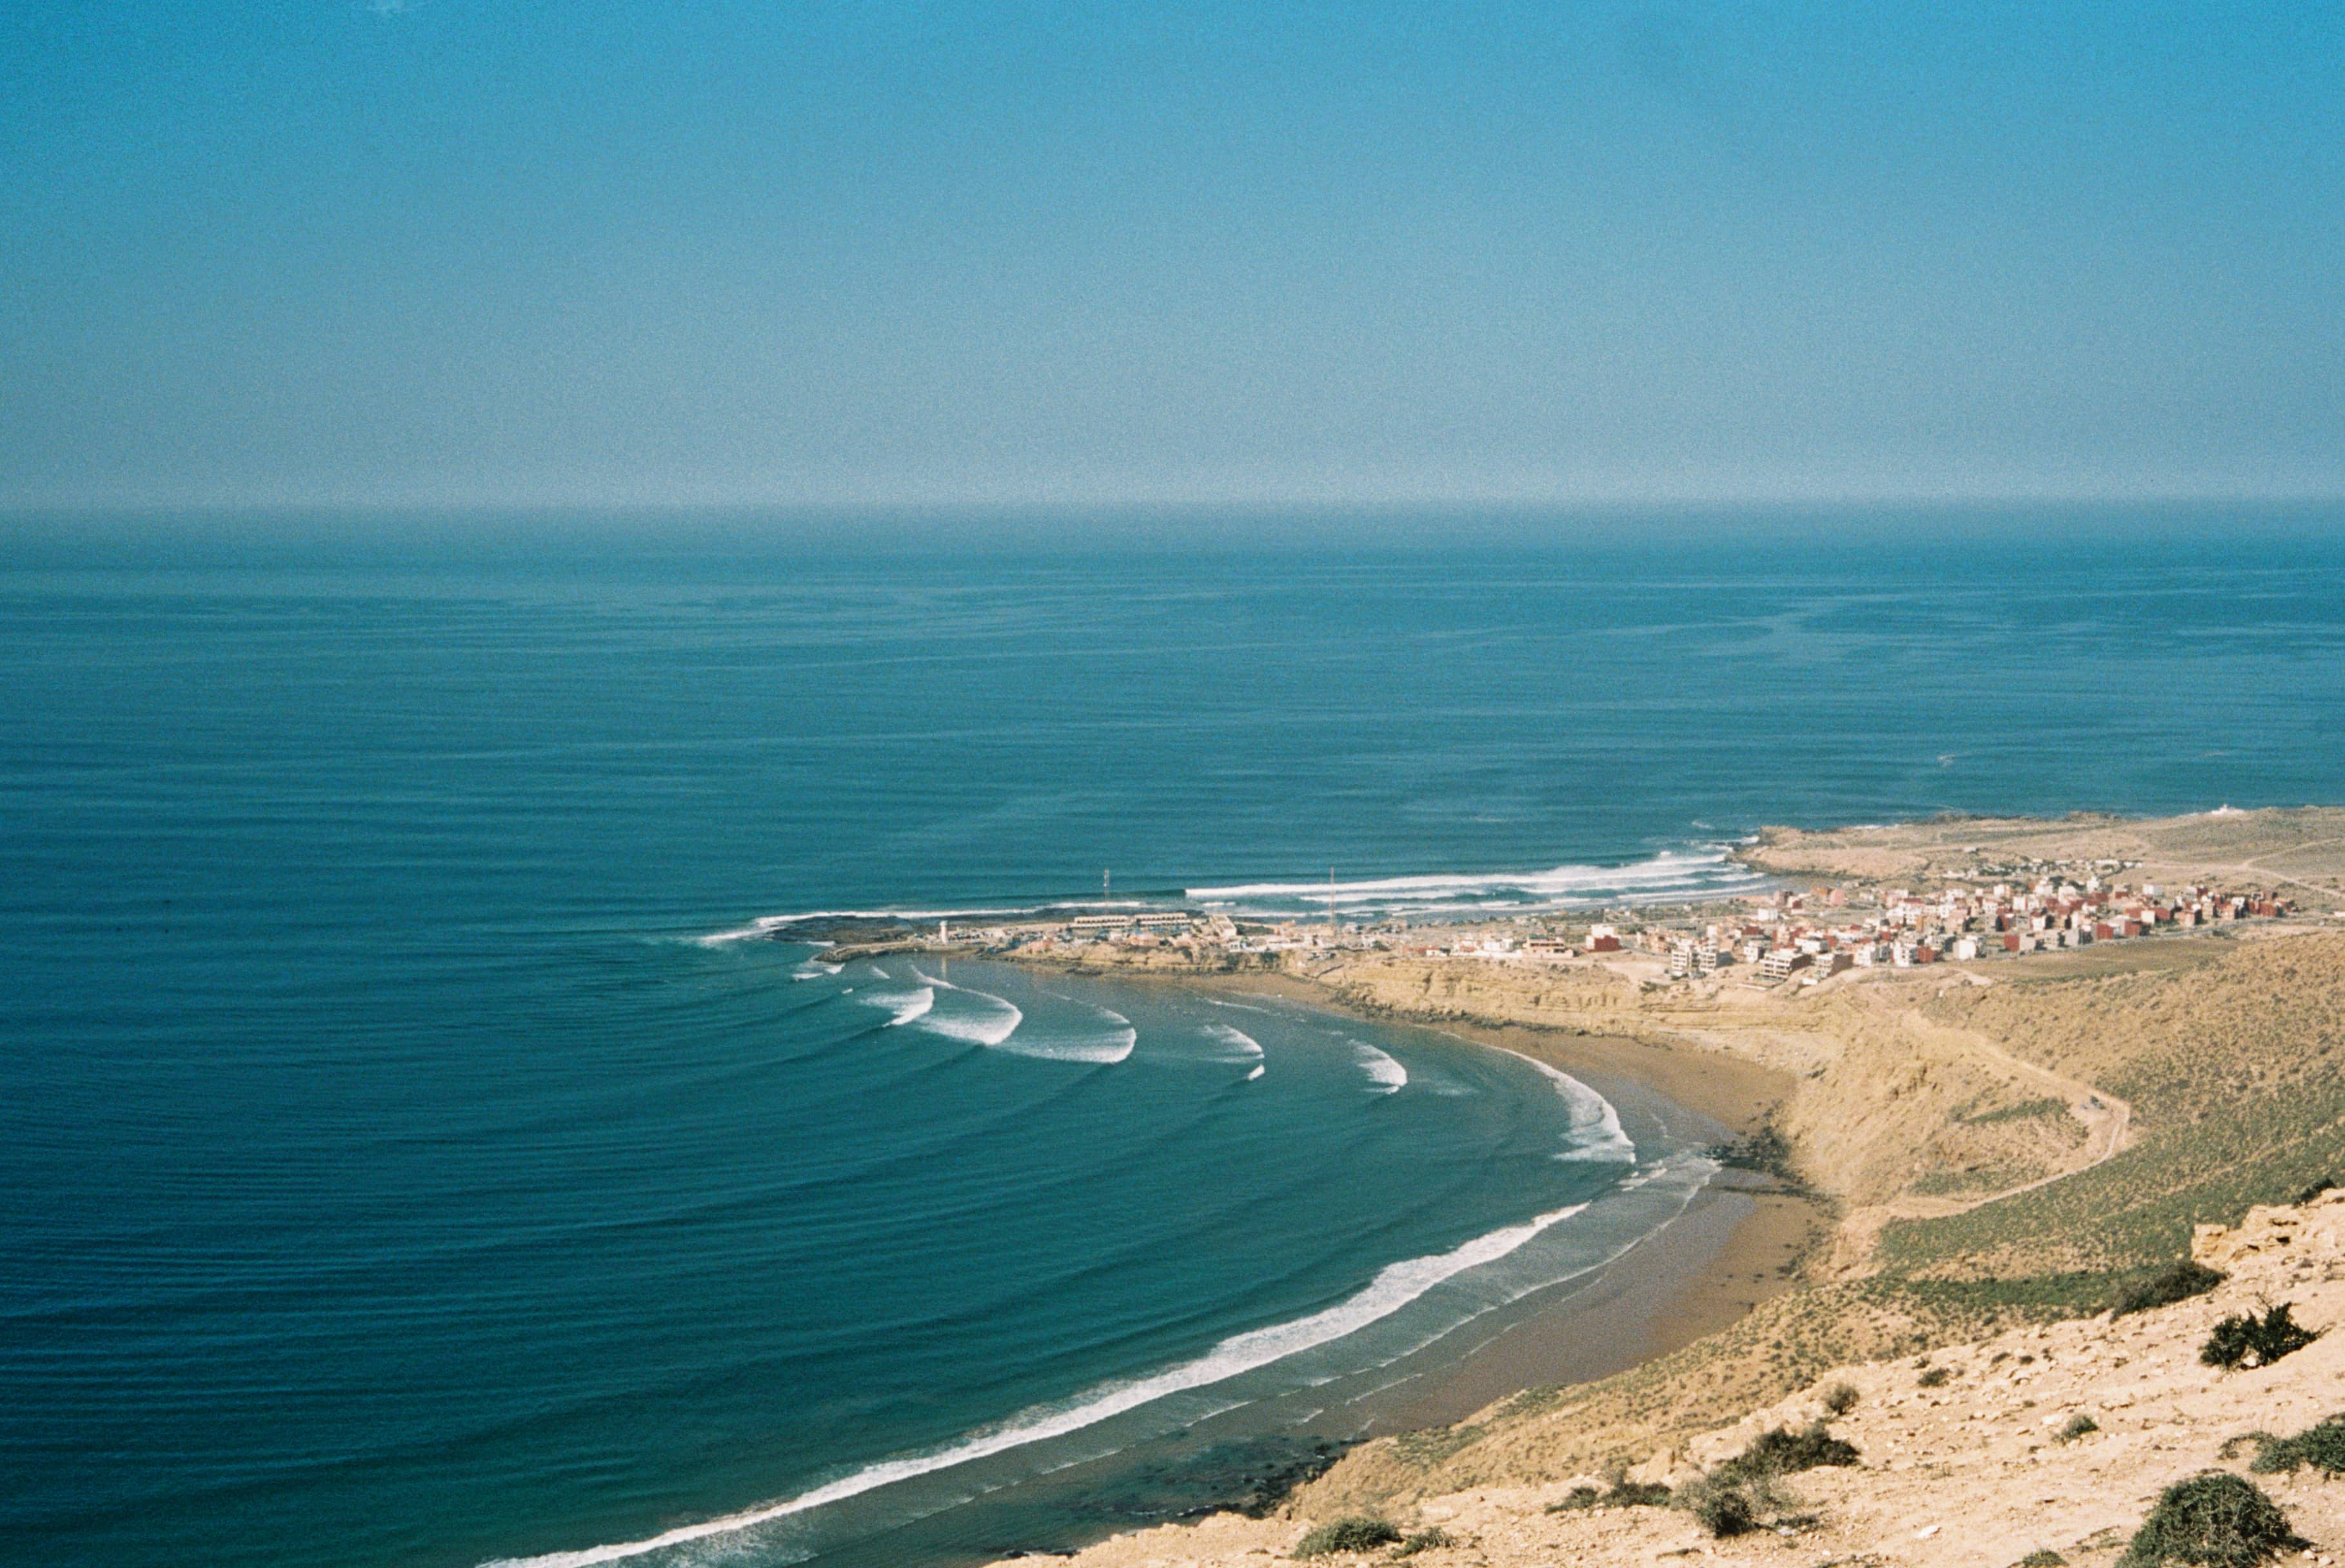 legendary Surf spot The Bay in Imsouane Morocco